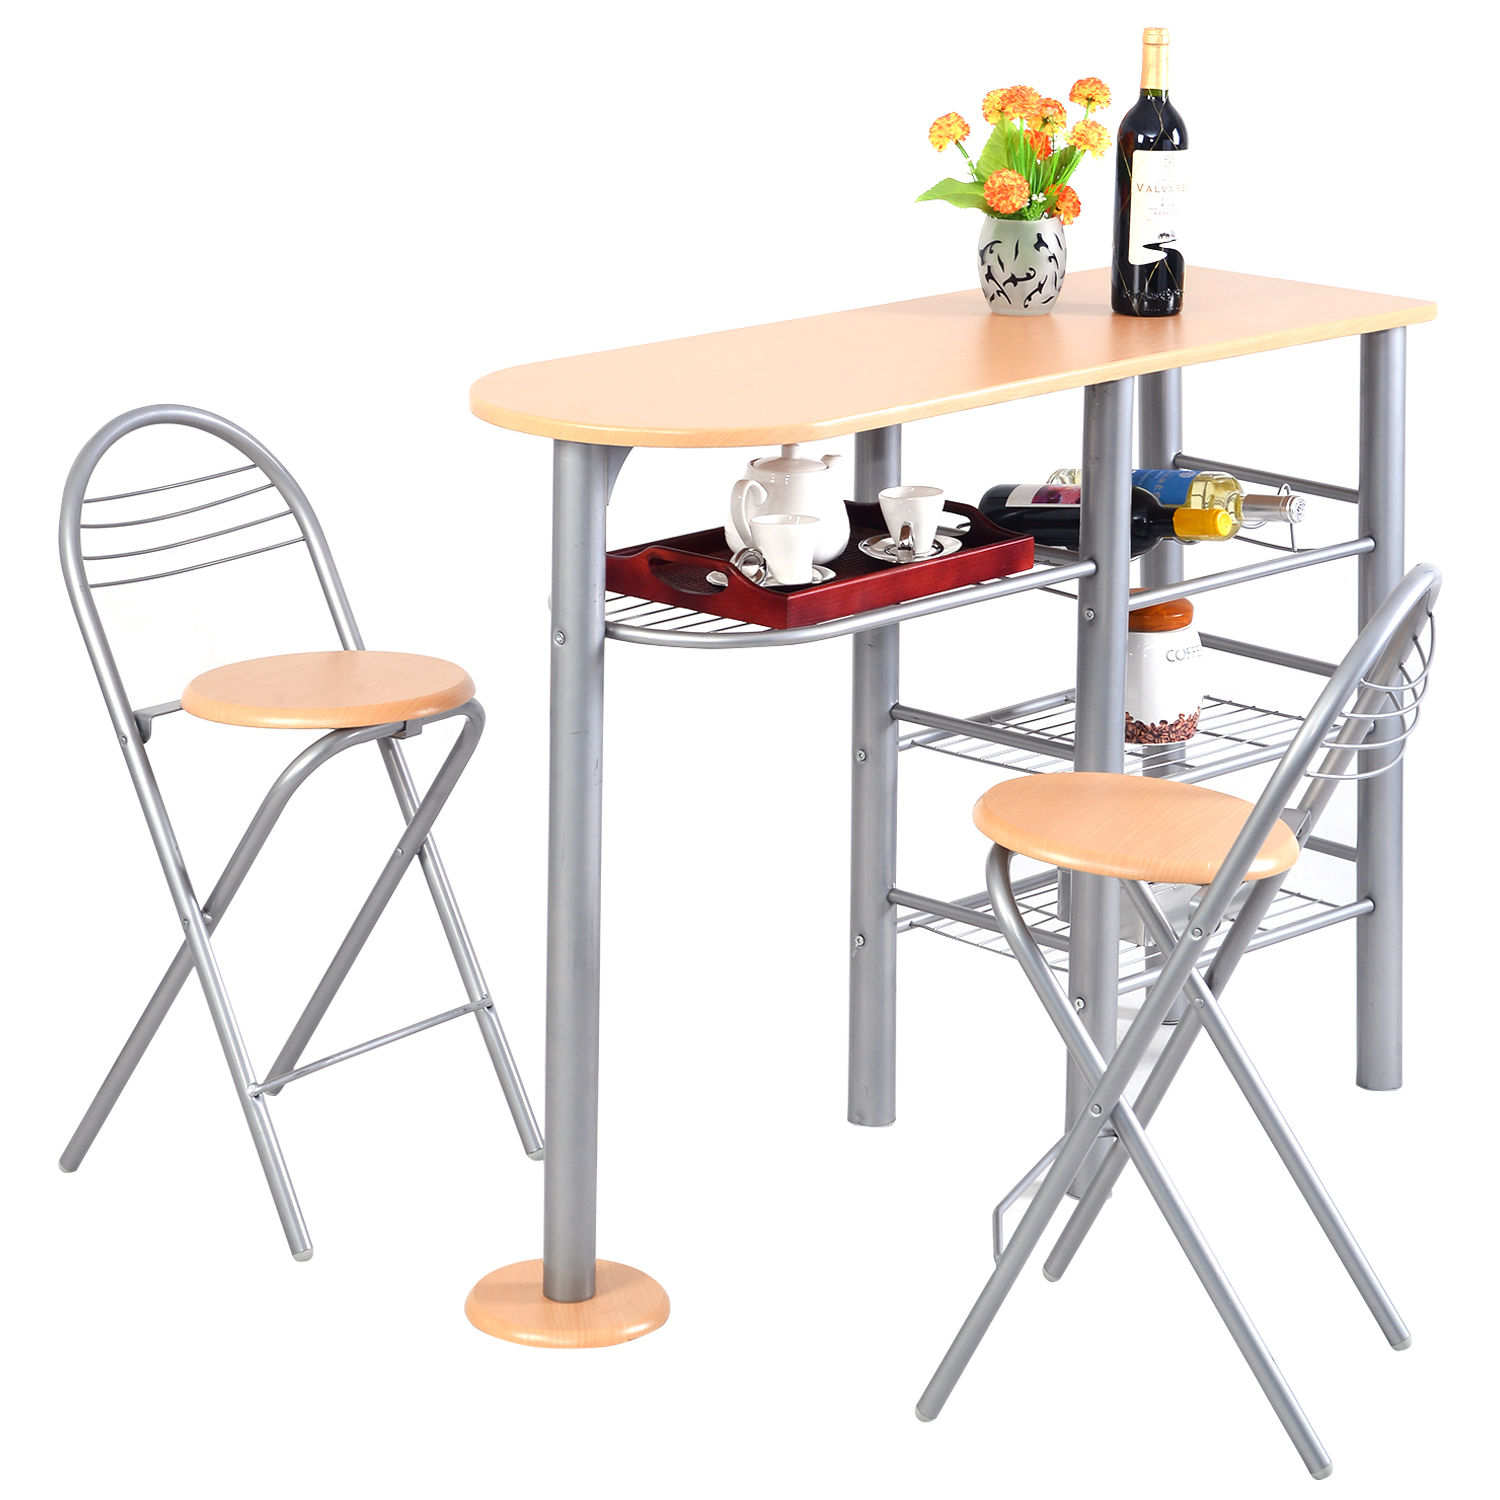 Costway Pub Dining Set Counter Height 3 Piece Table and Chairs Set Breakfast Kitchen